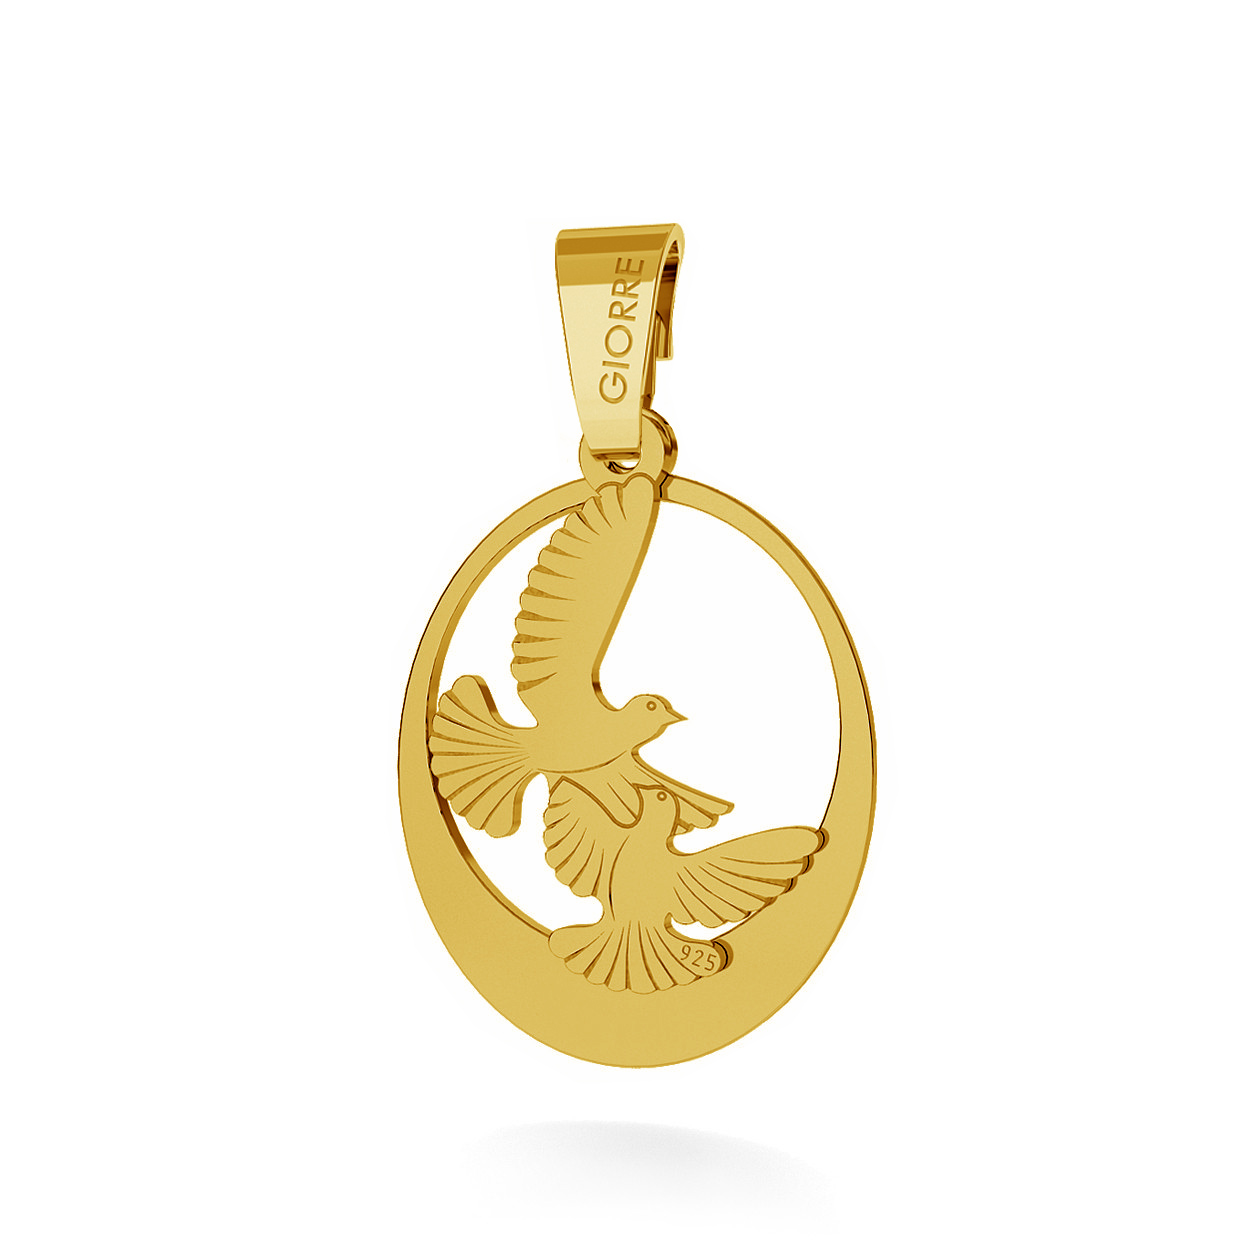 CHARM 123, TURTLEDOVE WITH ENGRAVE, STERLING SILVER (925) RHODIUM OR GOLD PLATED